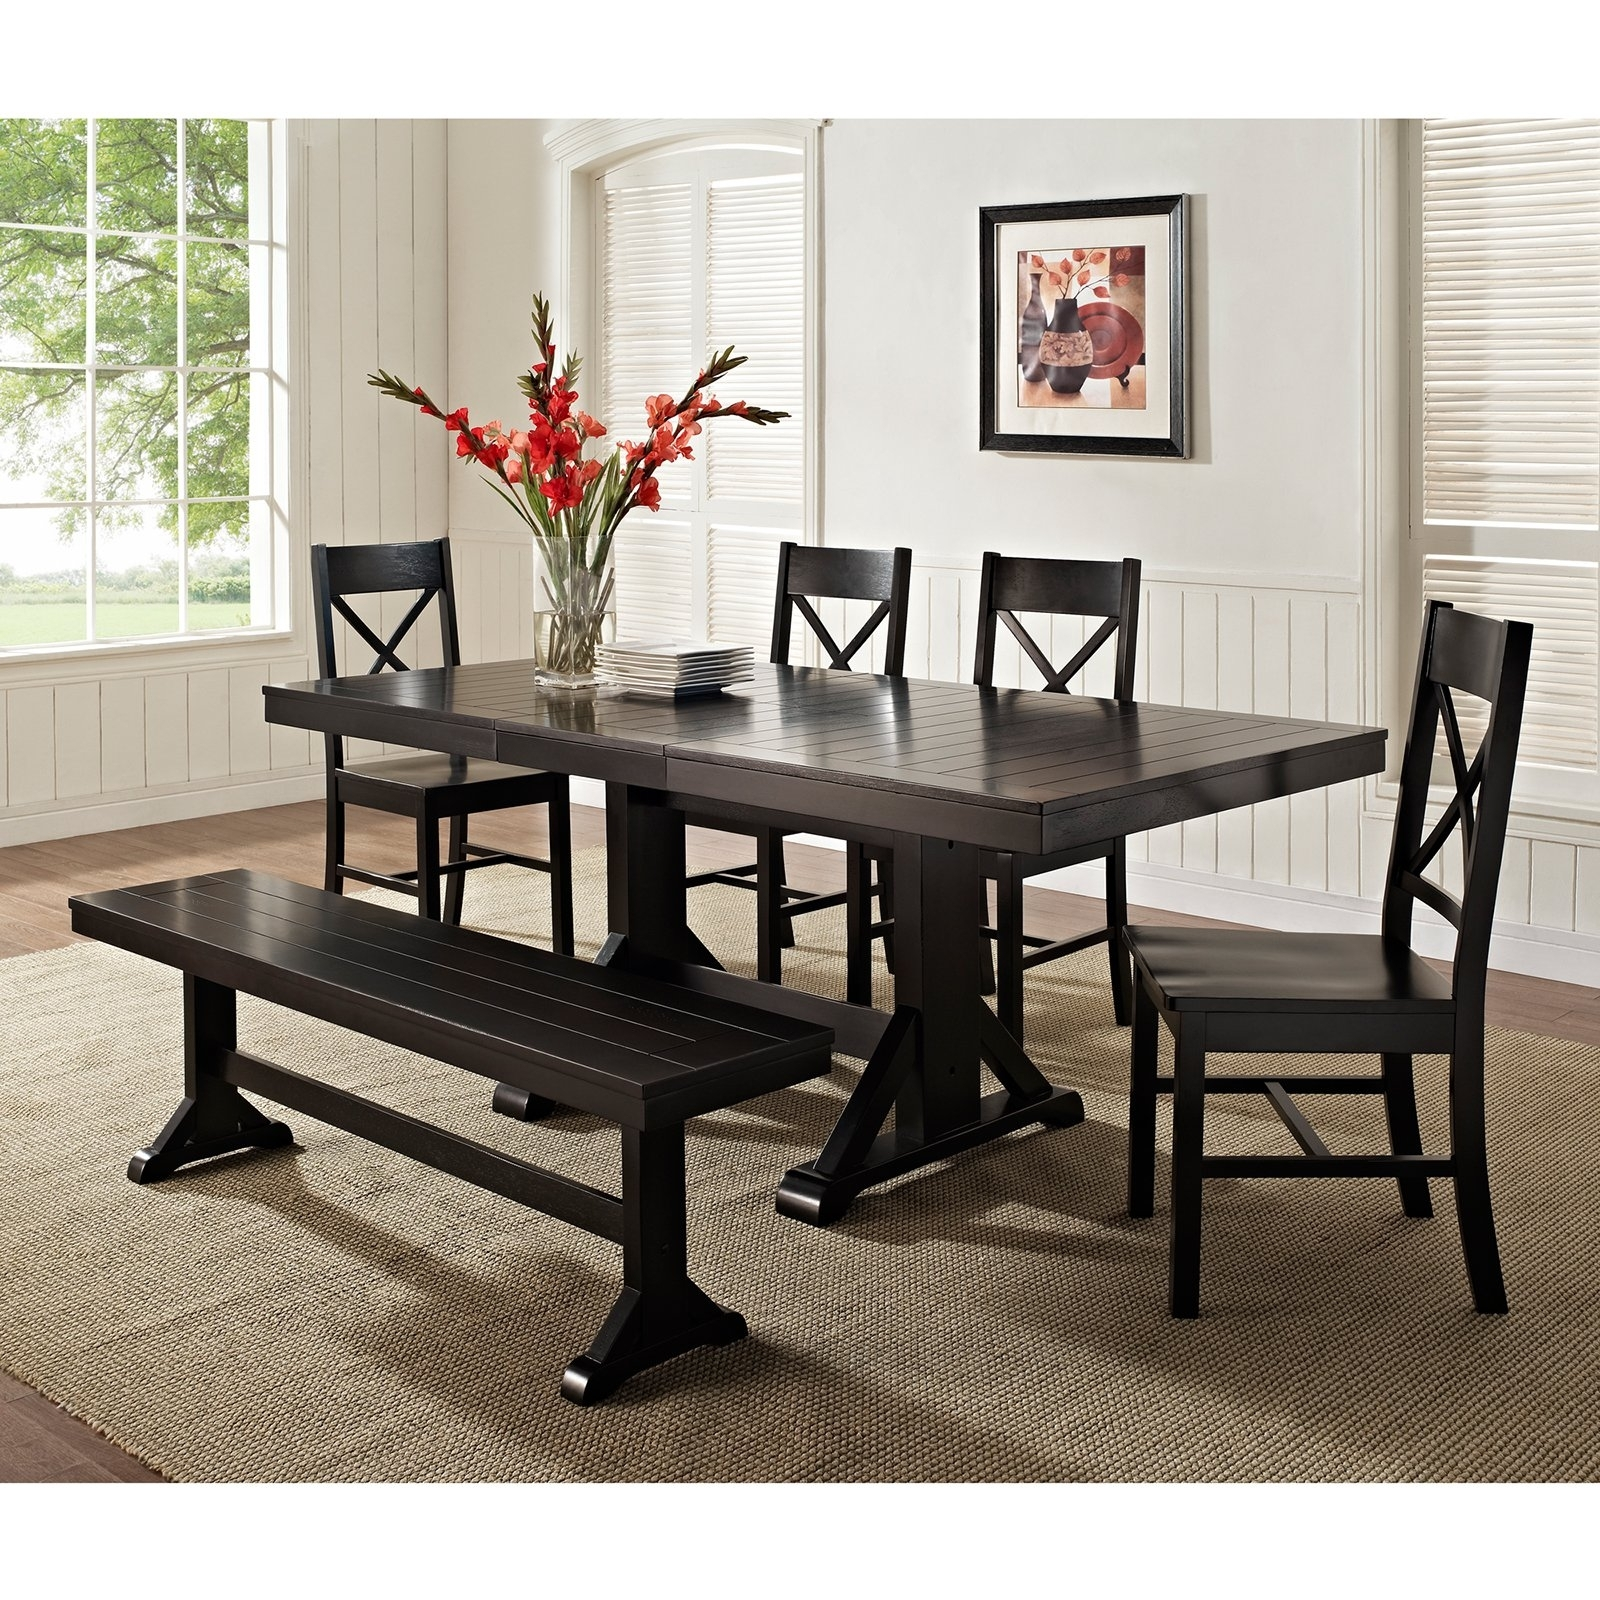 Black Wood Dining Tables Sets Throughout Best And Newest Walker Edison Black 6 Piece Solid Wood Dining Set With Bench (View 6 of 25)